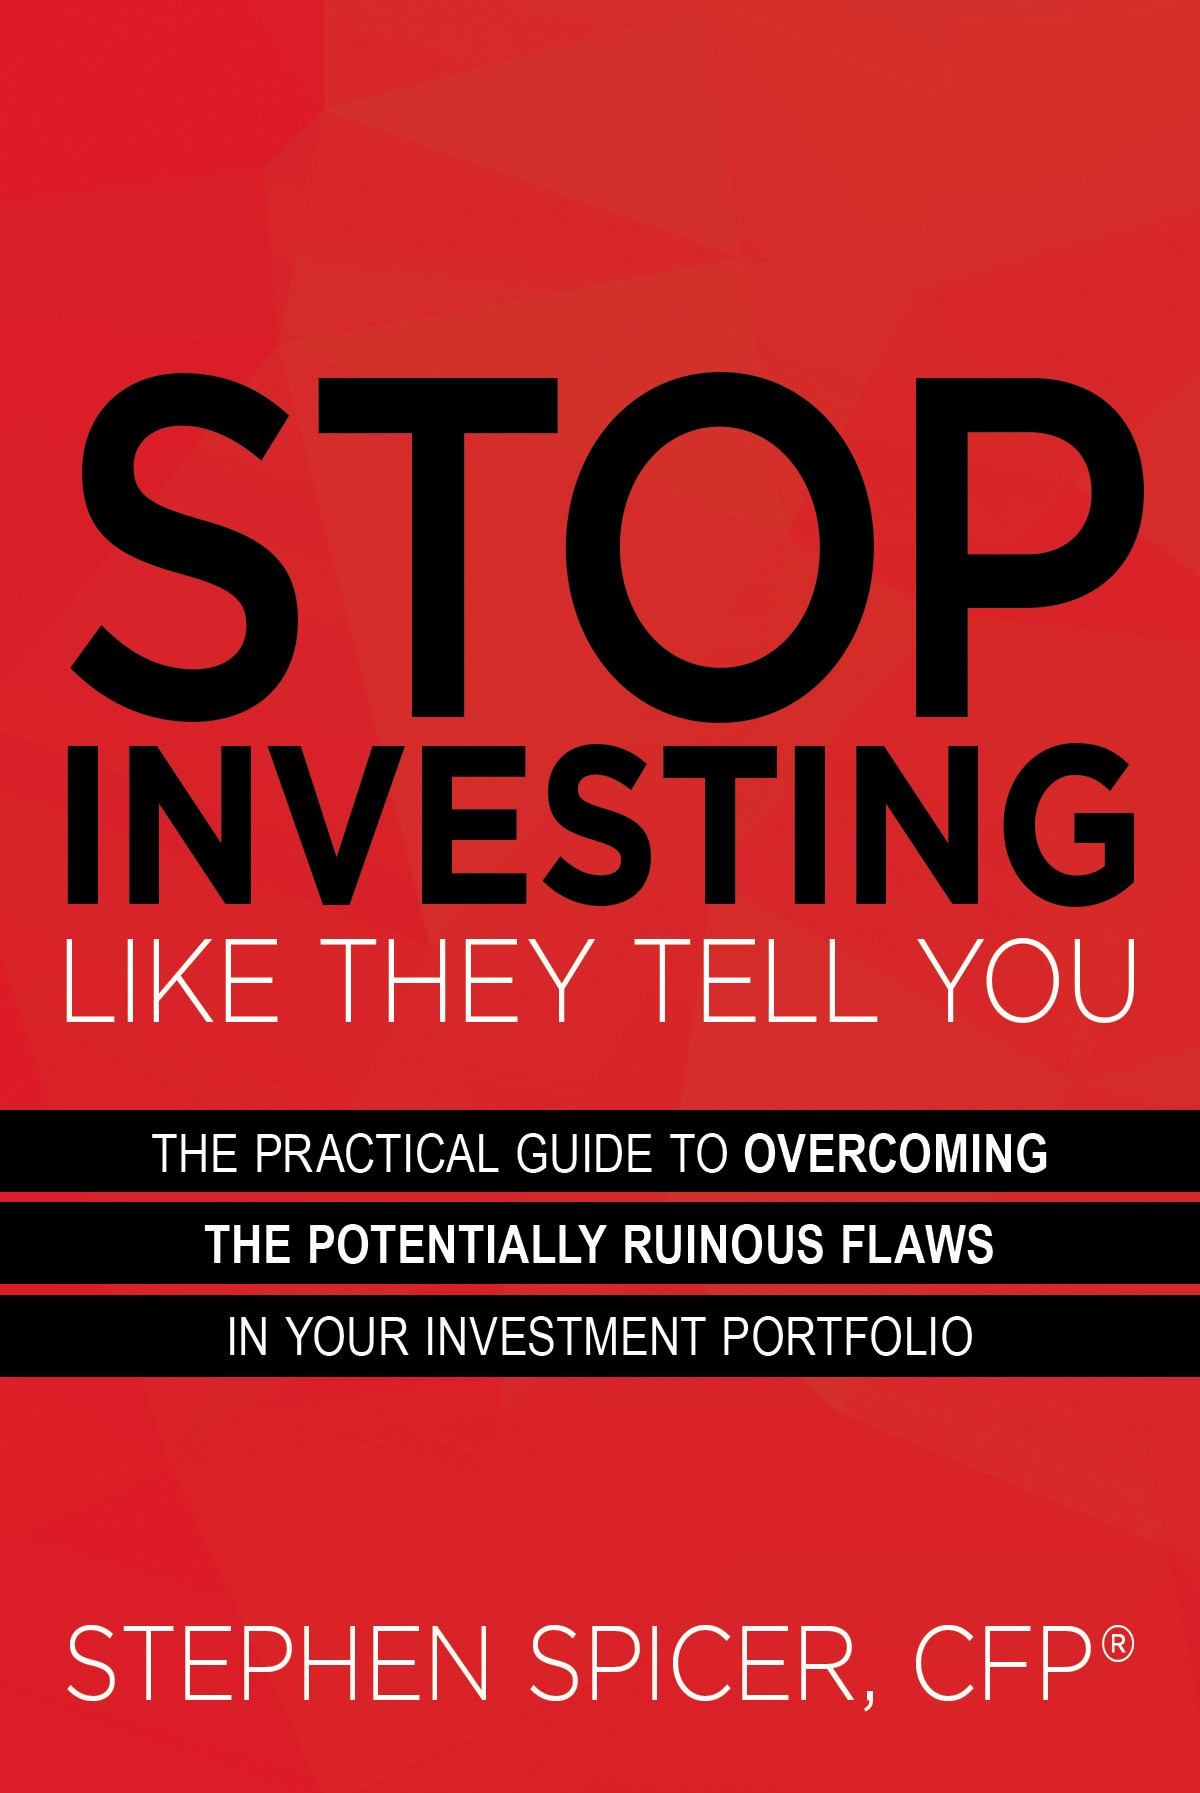 Stop Investing Like They Tell You